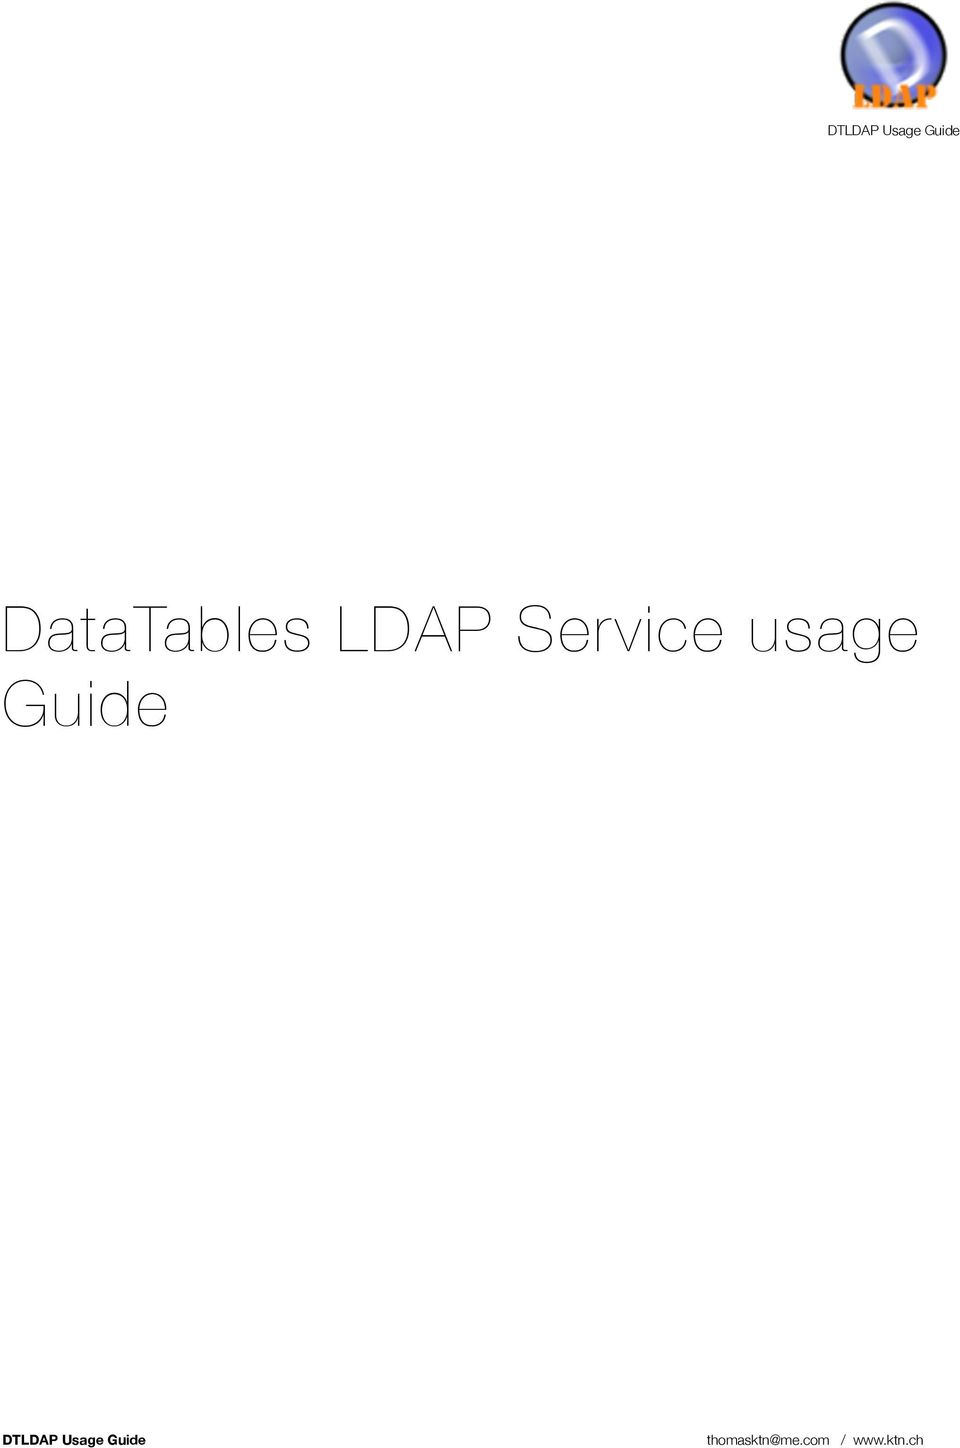 DTLDAP Usage Guide